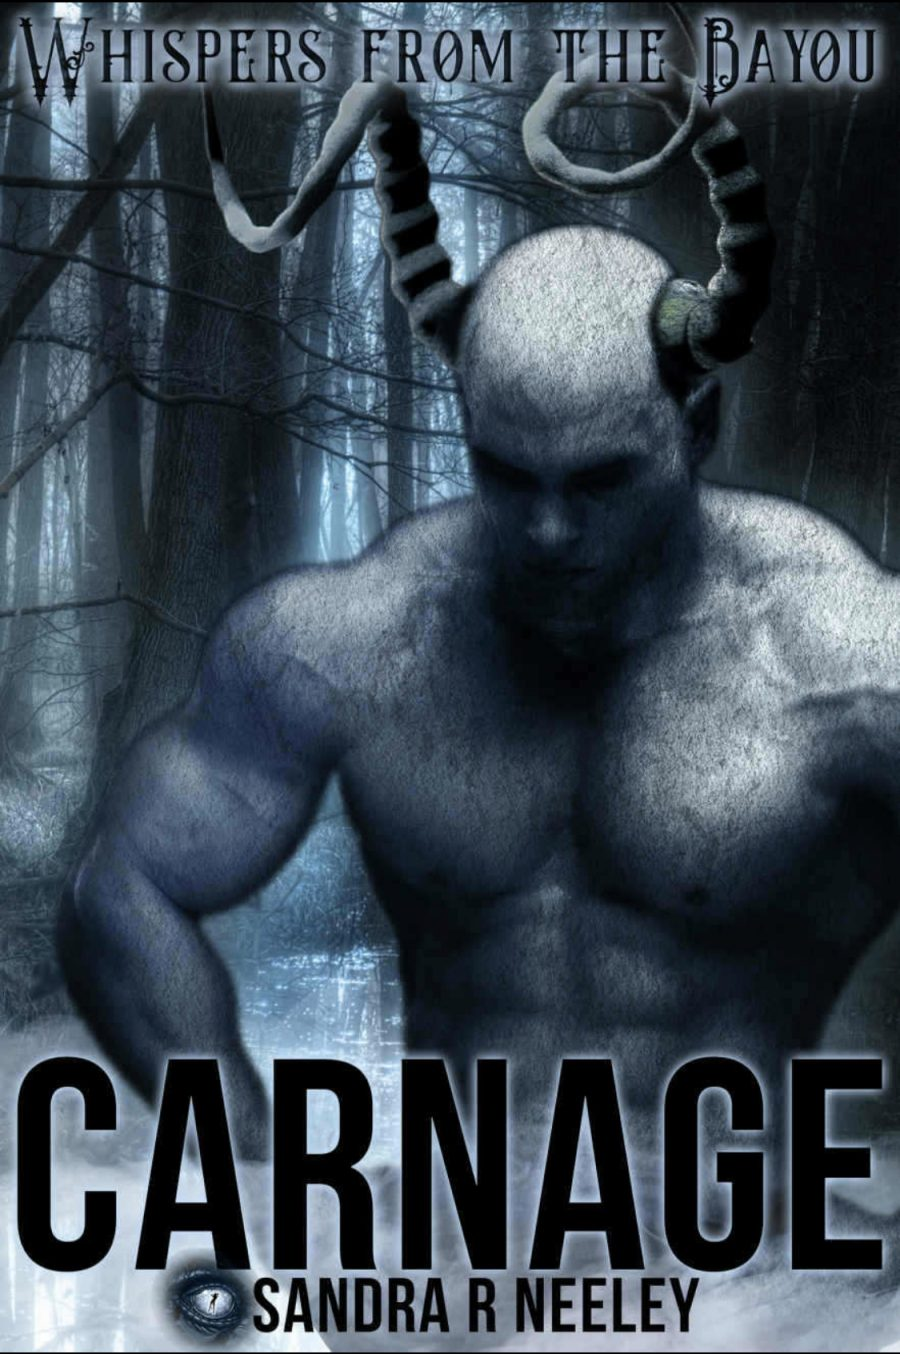 Carnage by Sandra R Neeley - A Book Review #BookReview #Review #PNR #Paranormal #HEA #Gargoyles #Vampires #Monsters #Bayou #KindleUnlimited #KU